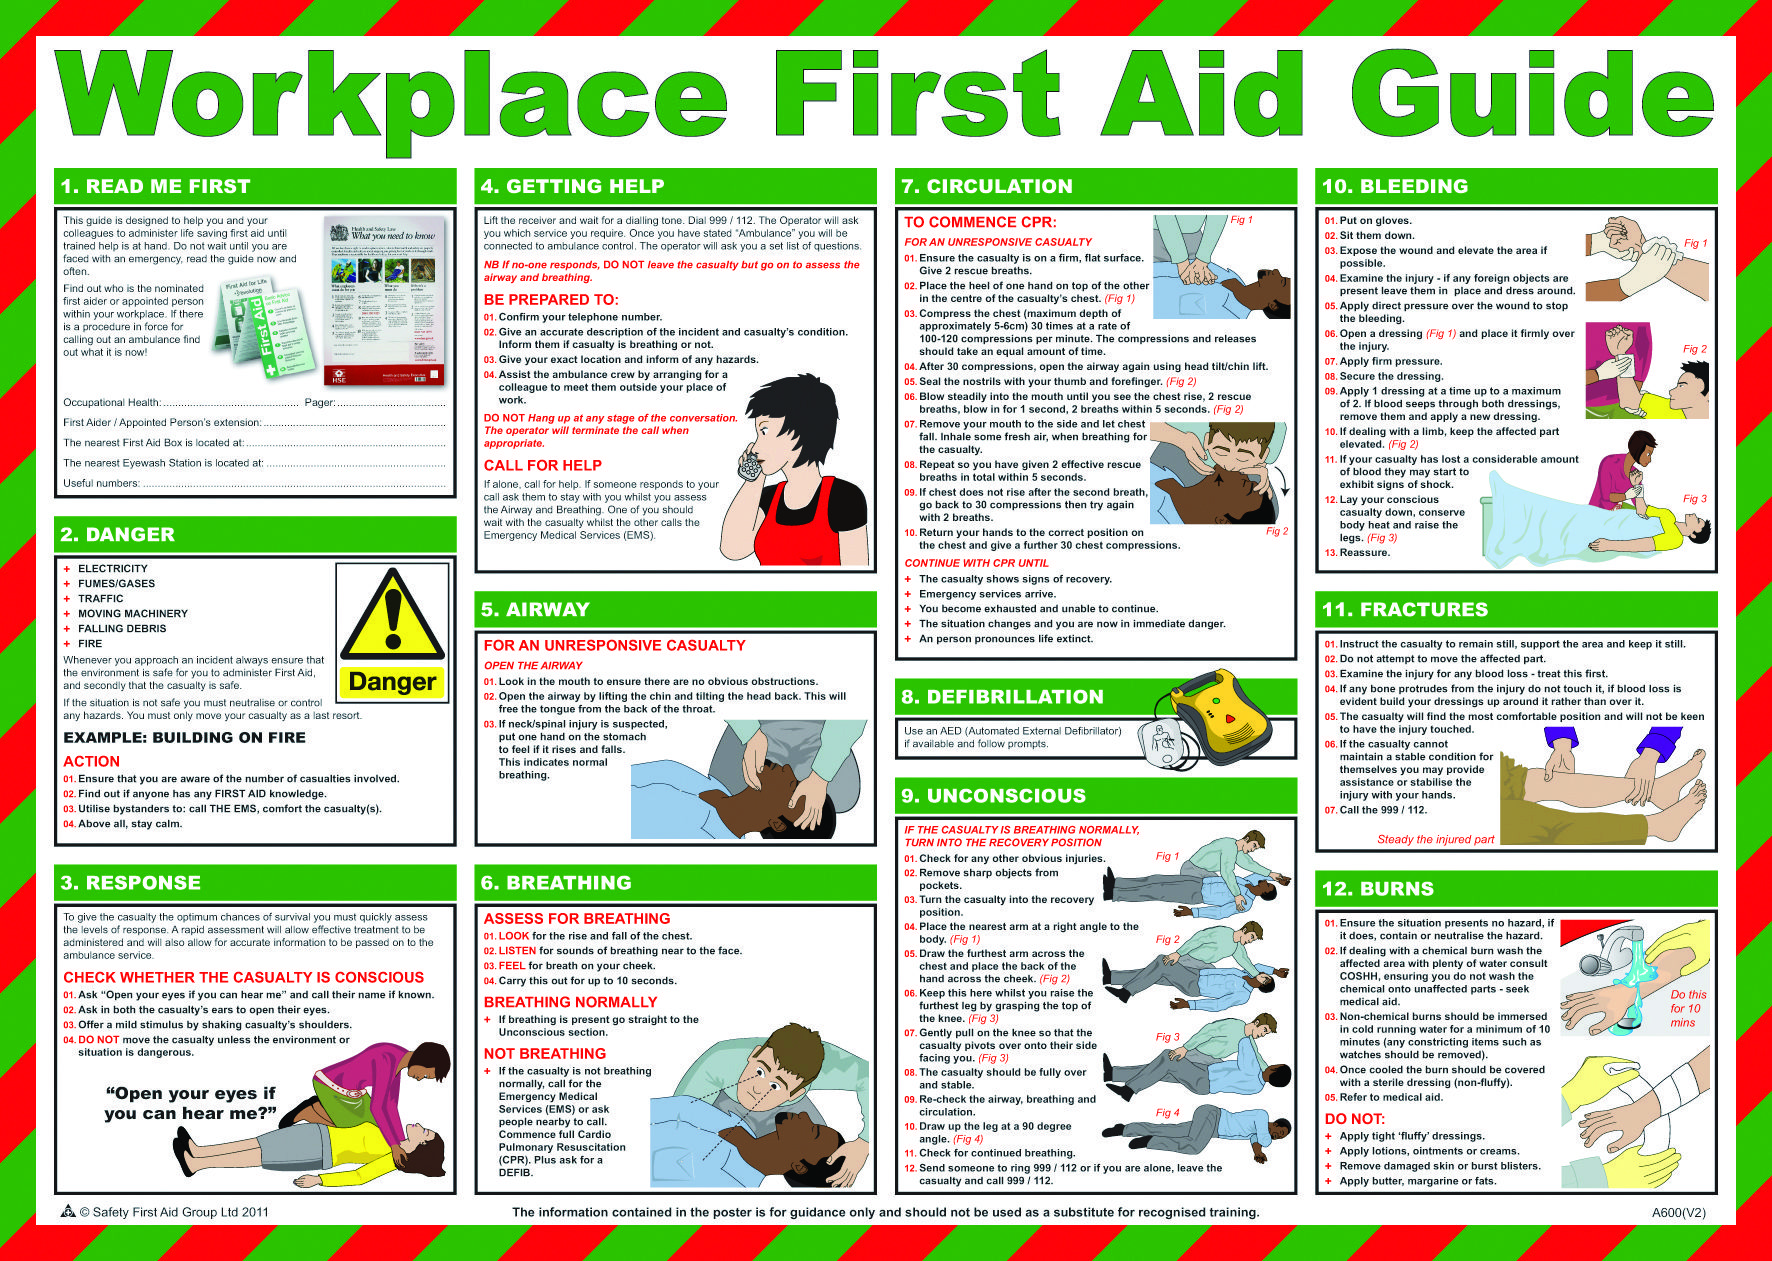 picture regarding First Aid Guide Printable called A initially aider within just the business gives